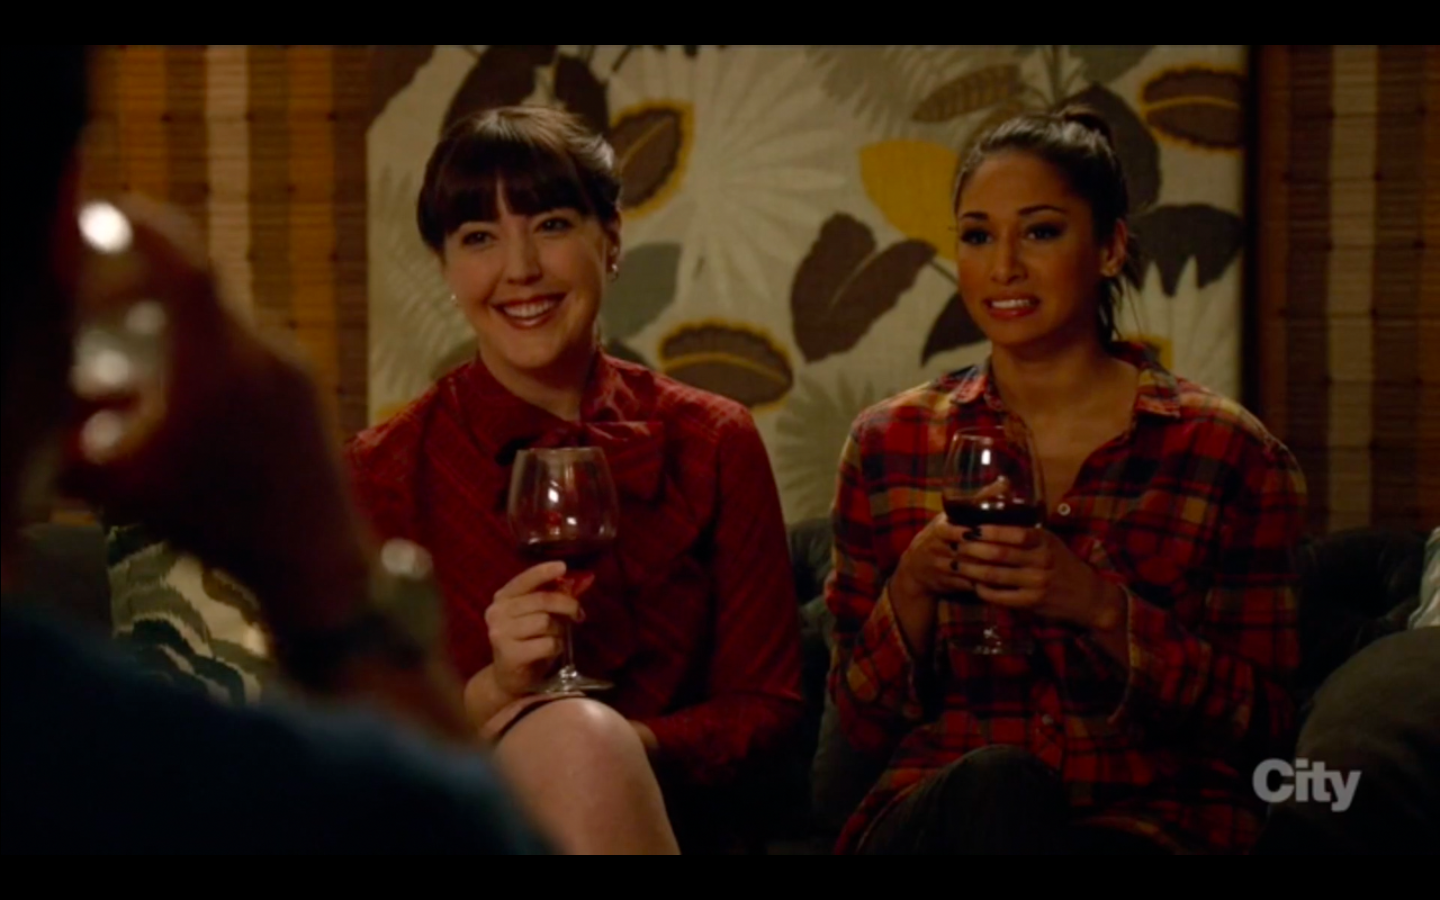 Cooper Barrett's Guide to Surviving Life, Episode 102 - Erin Barnes & Meaghan Rath